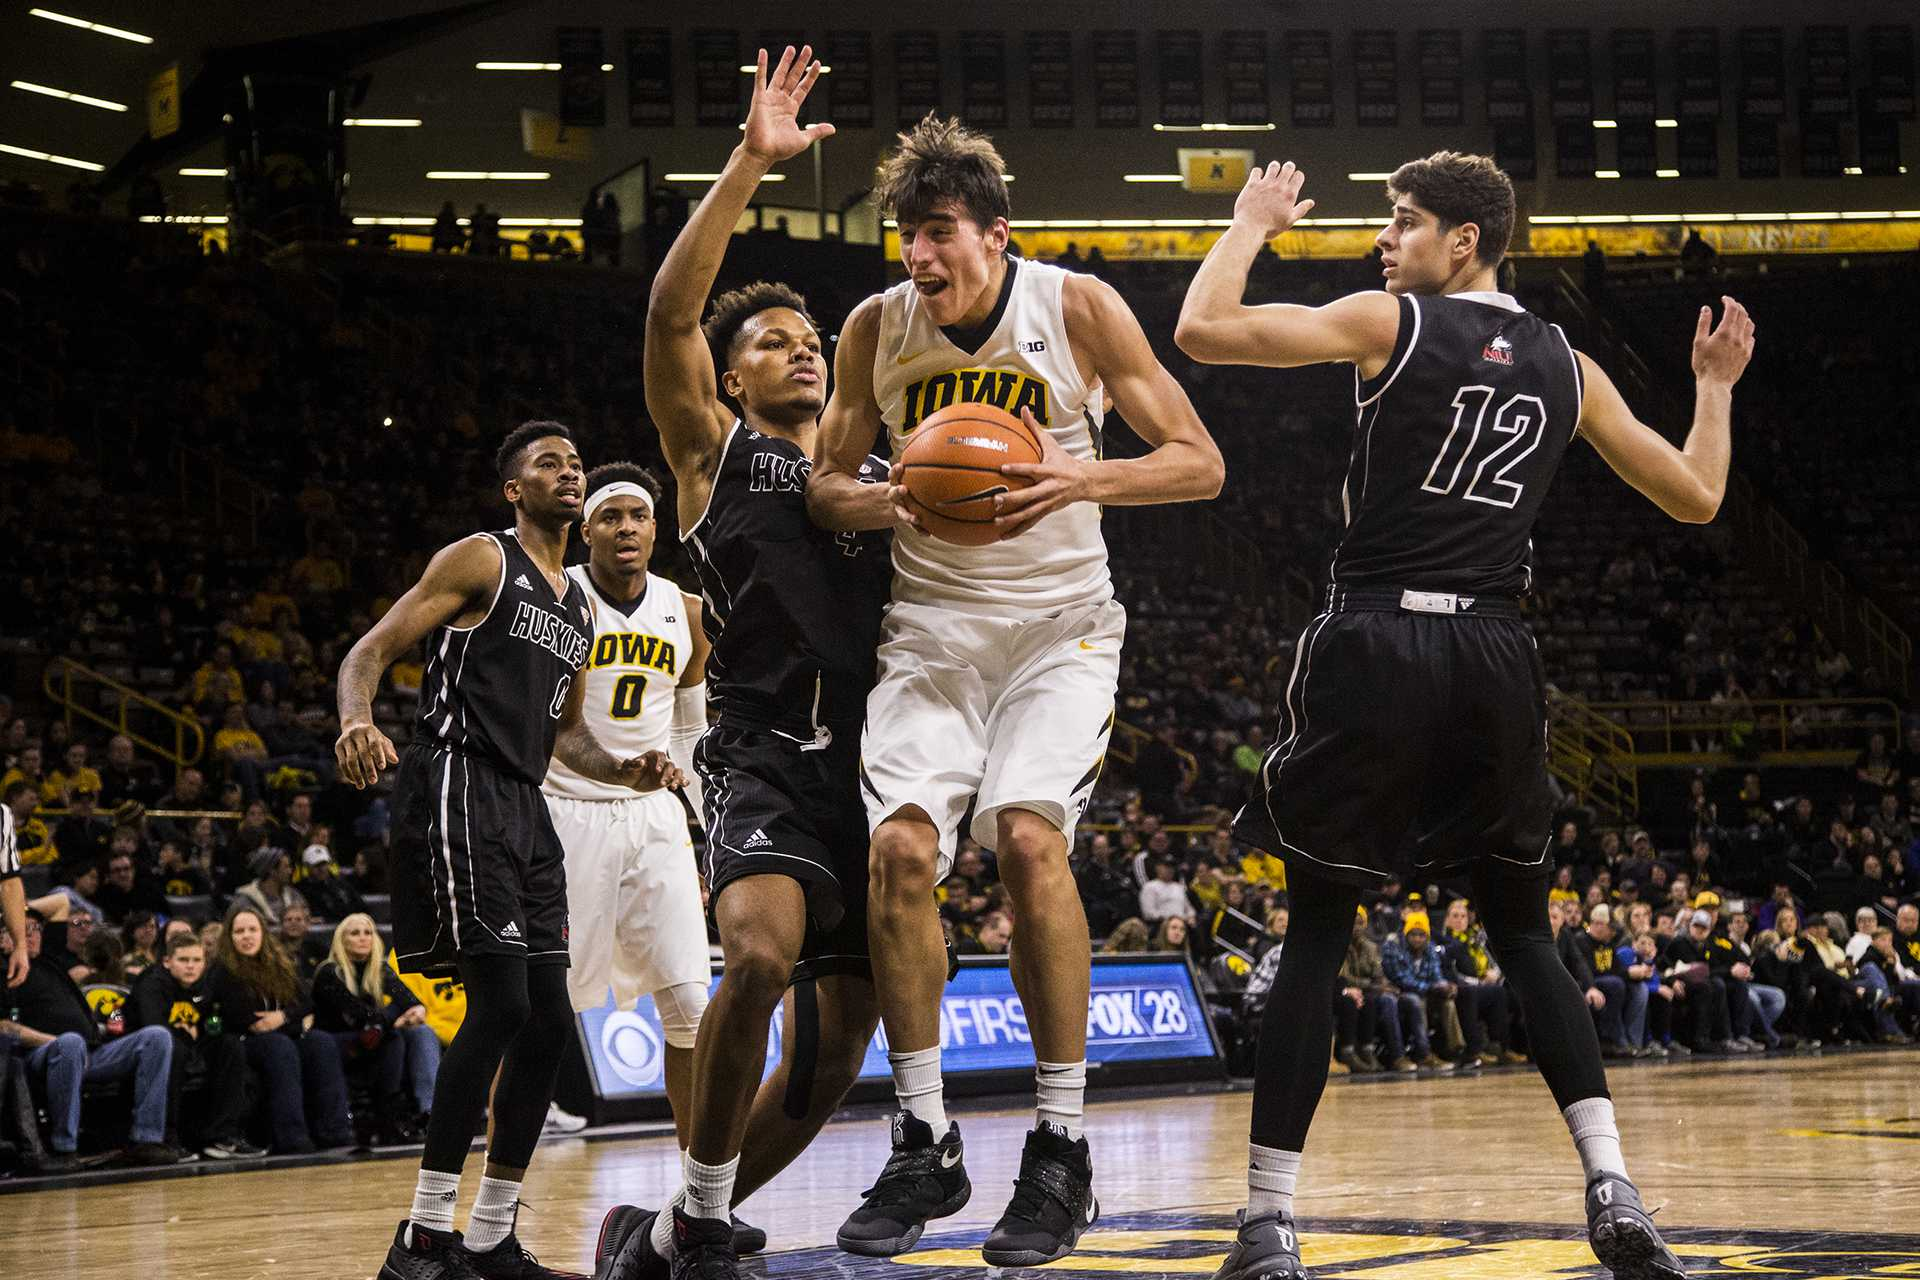 Iowa forward Luka Garza gathers the ball during Iowa's game against Northern Illinois on Friday Dec. 29, 2017. The Hawkeyes defeated the Huskies 98 to 75. (Nick Rohlman/The Daily Iowan)